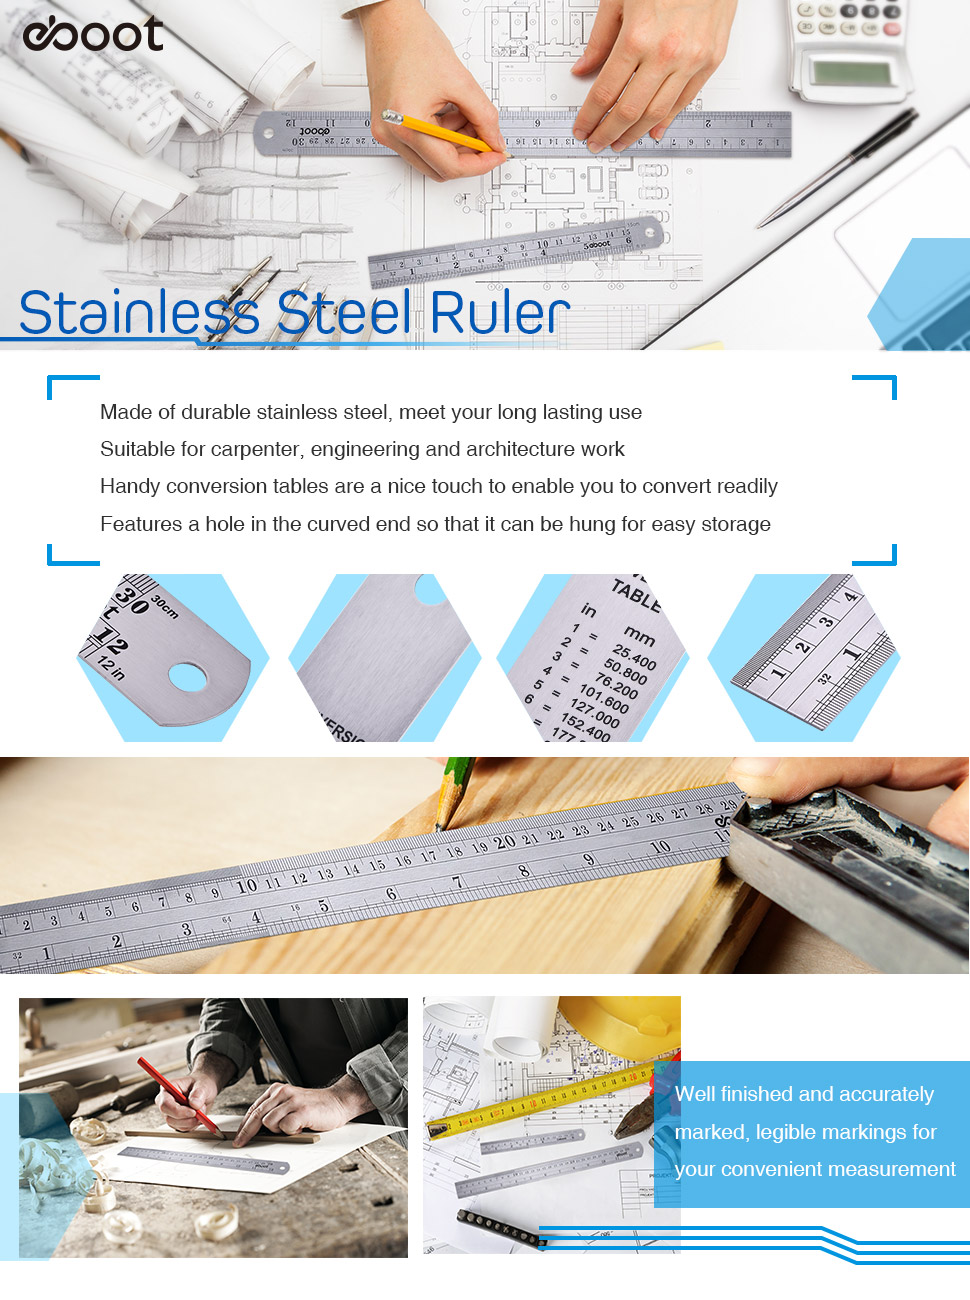 Amazon eboot stainless steel ruler 12 inch and 6 inch metal premium quality stainless steel heavy duty and non bendable which is ideal for meeting your long lasting use nvjuhfo Choice Image